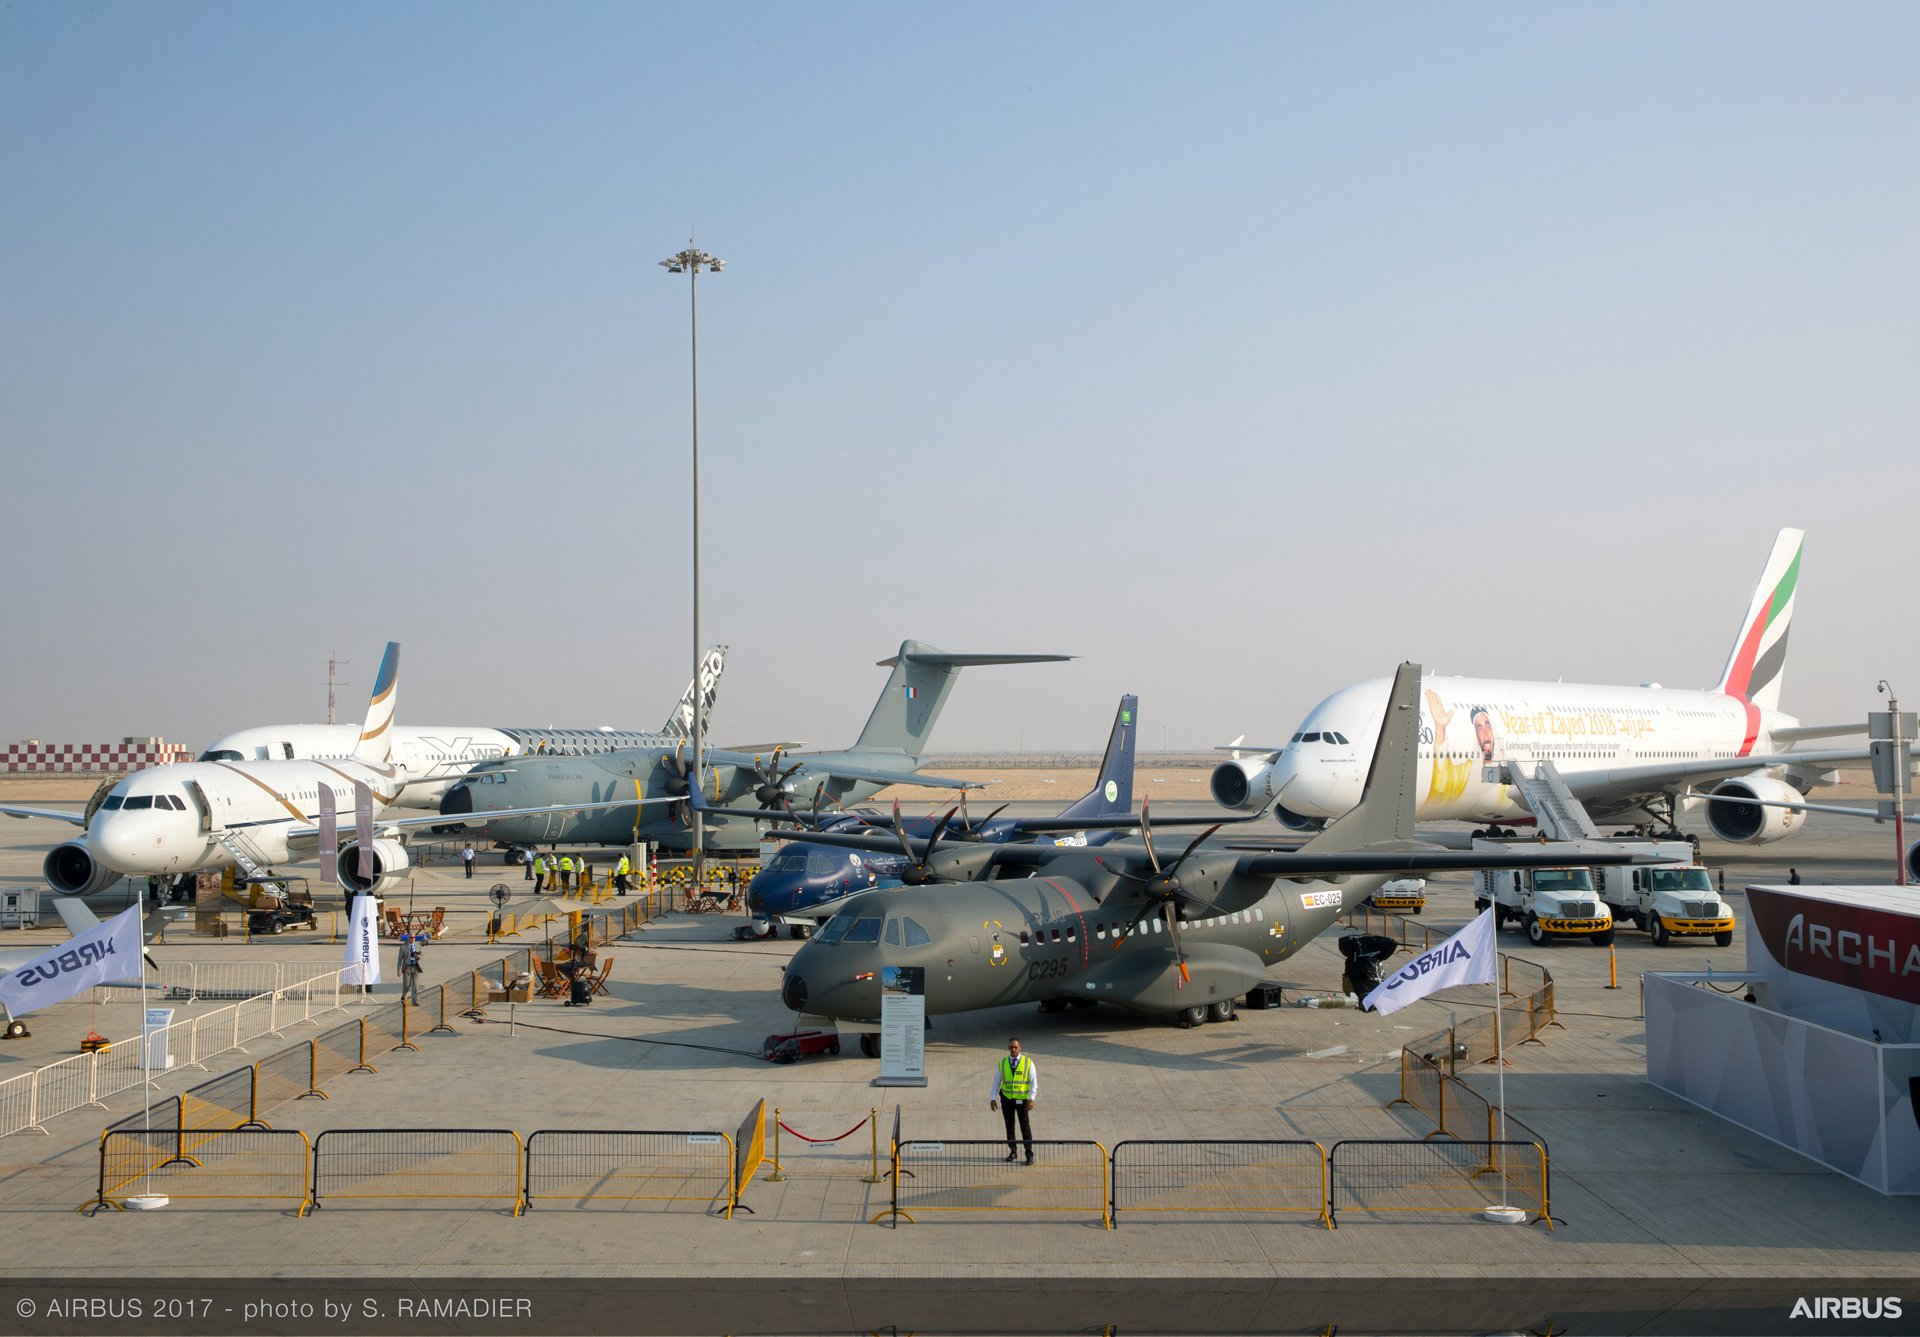 Airbus has a major presence at Dubai Airshow 2017, which is one of the world's fastest-growing aviation events